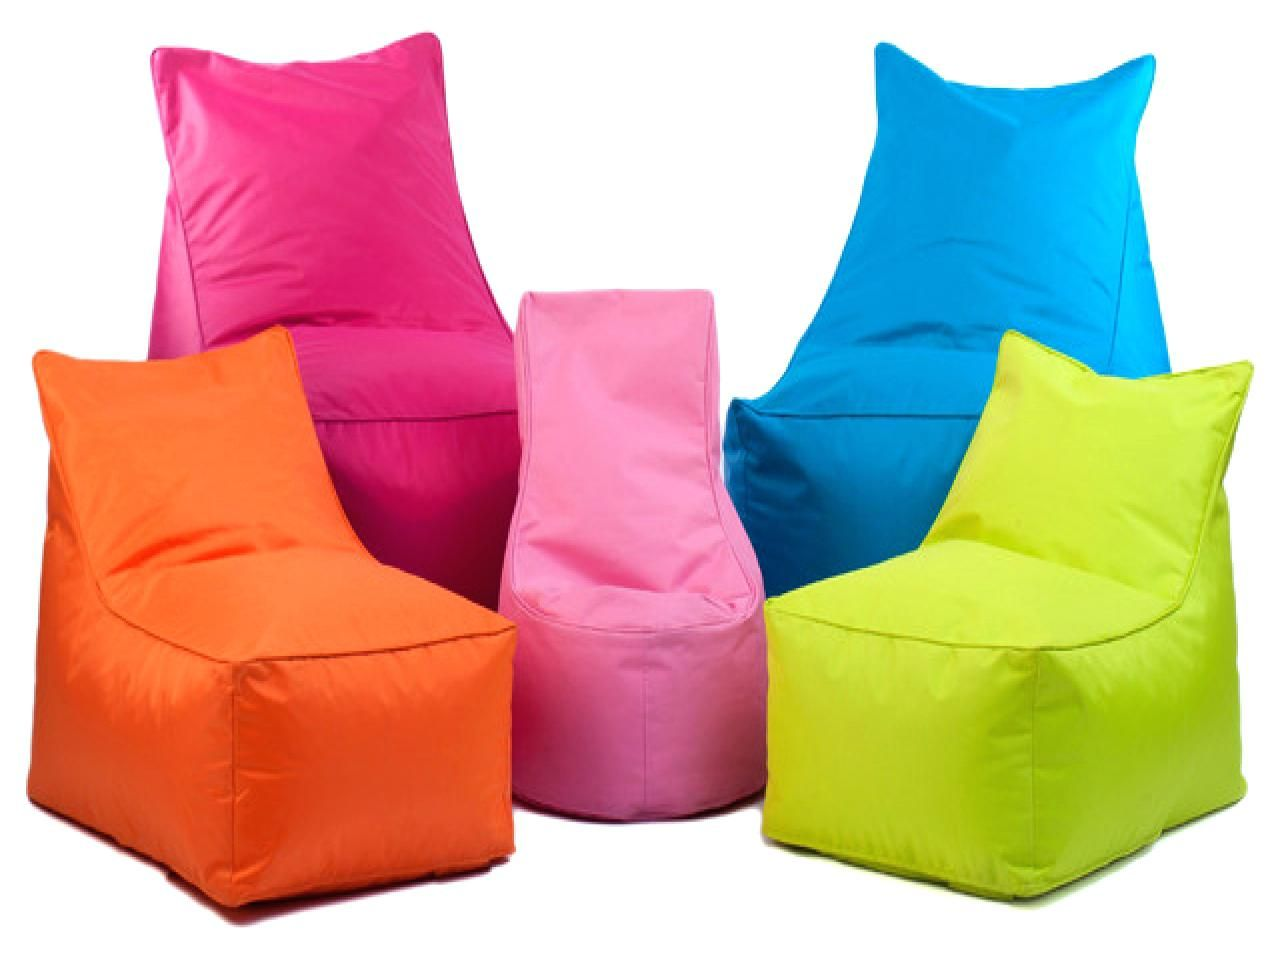 Kids Bean Bag Chairs Ikea For Reading